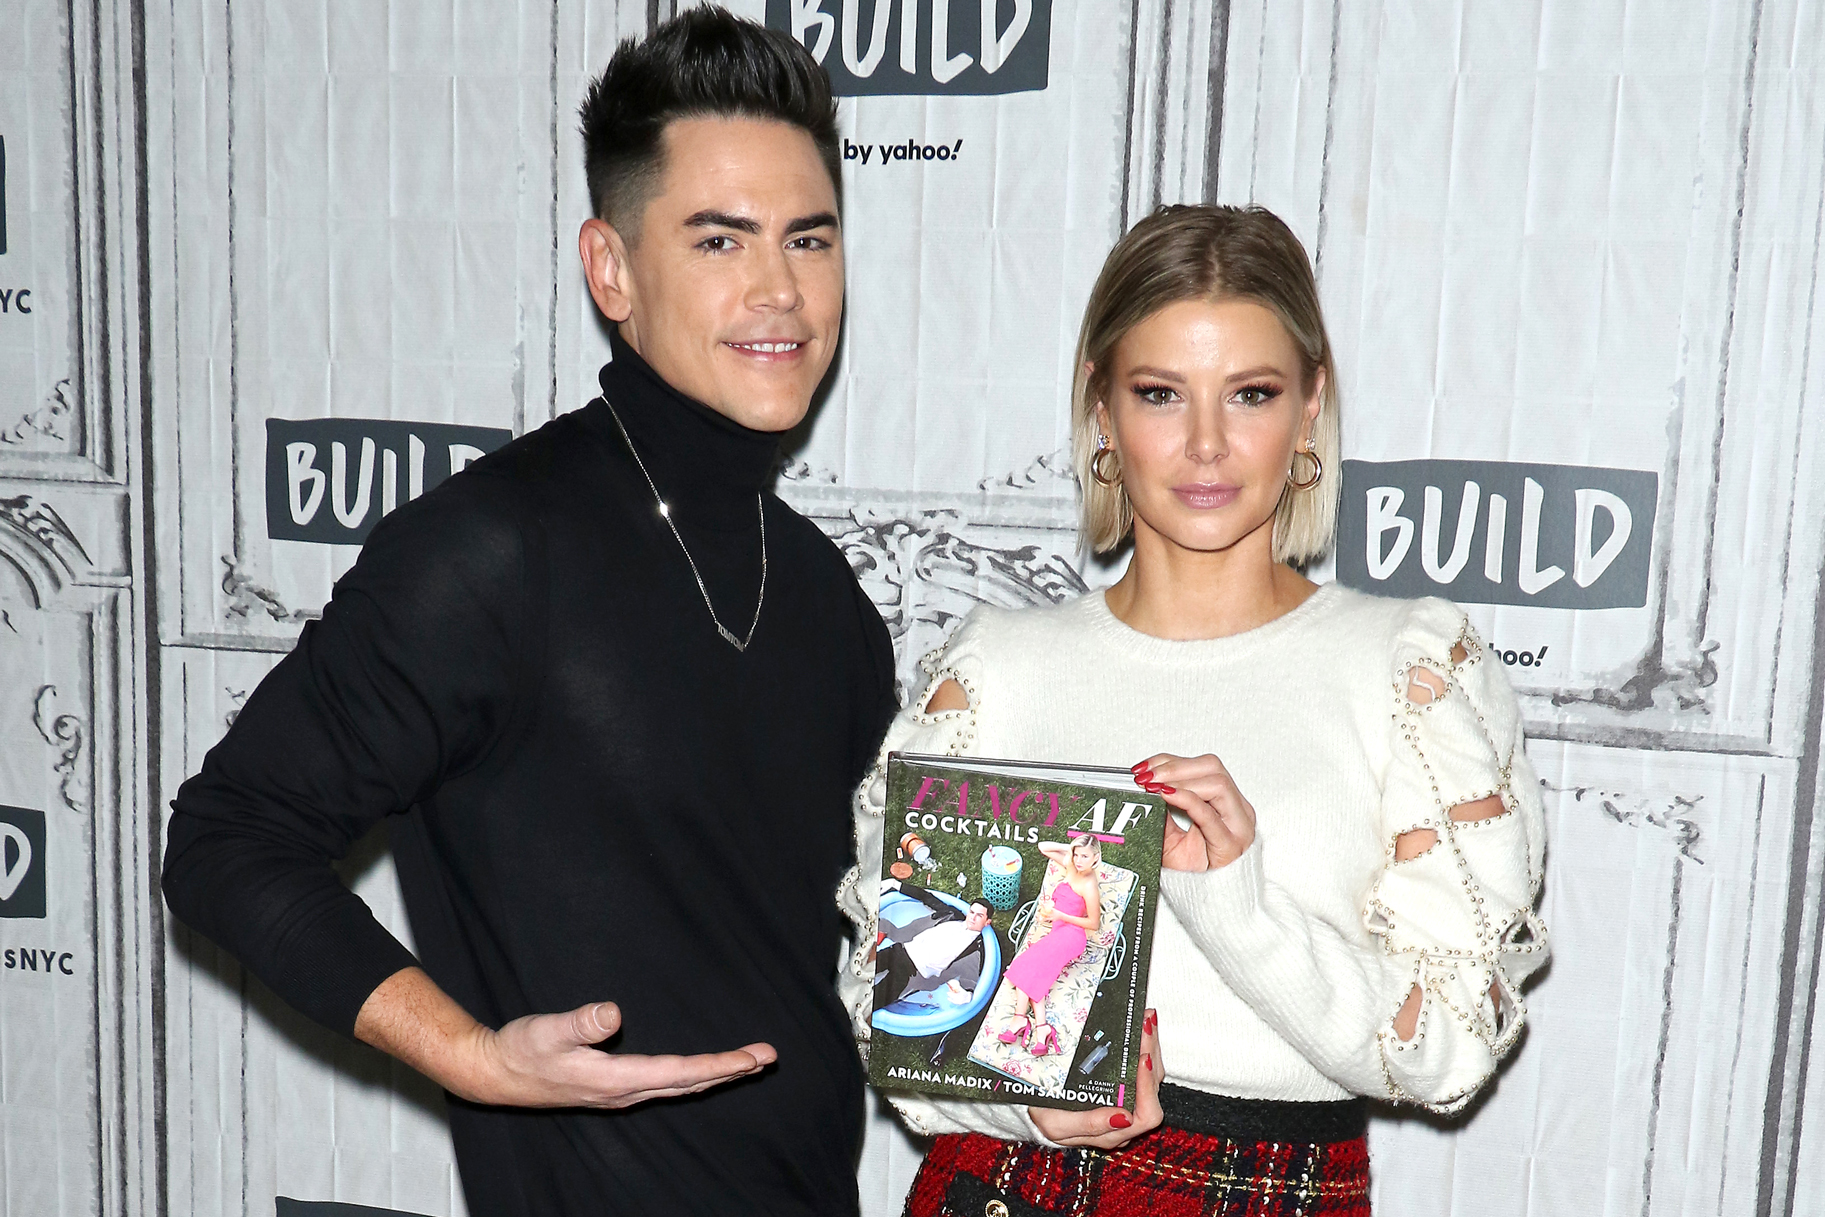 Tom Sandoval Ariana Madix Cocktail Book